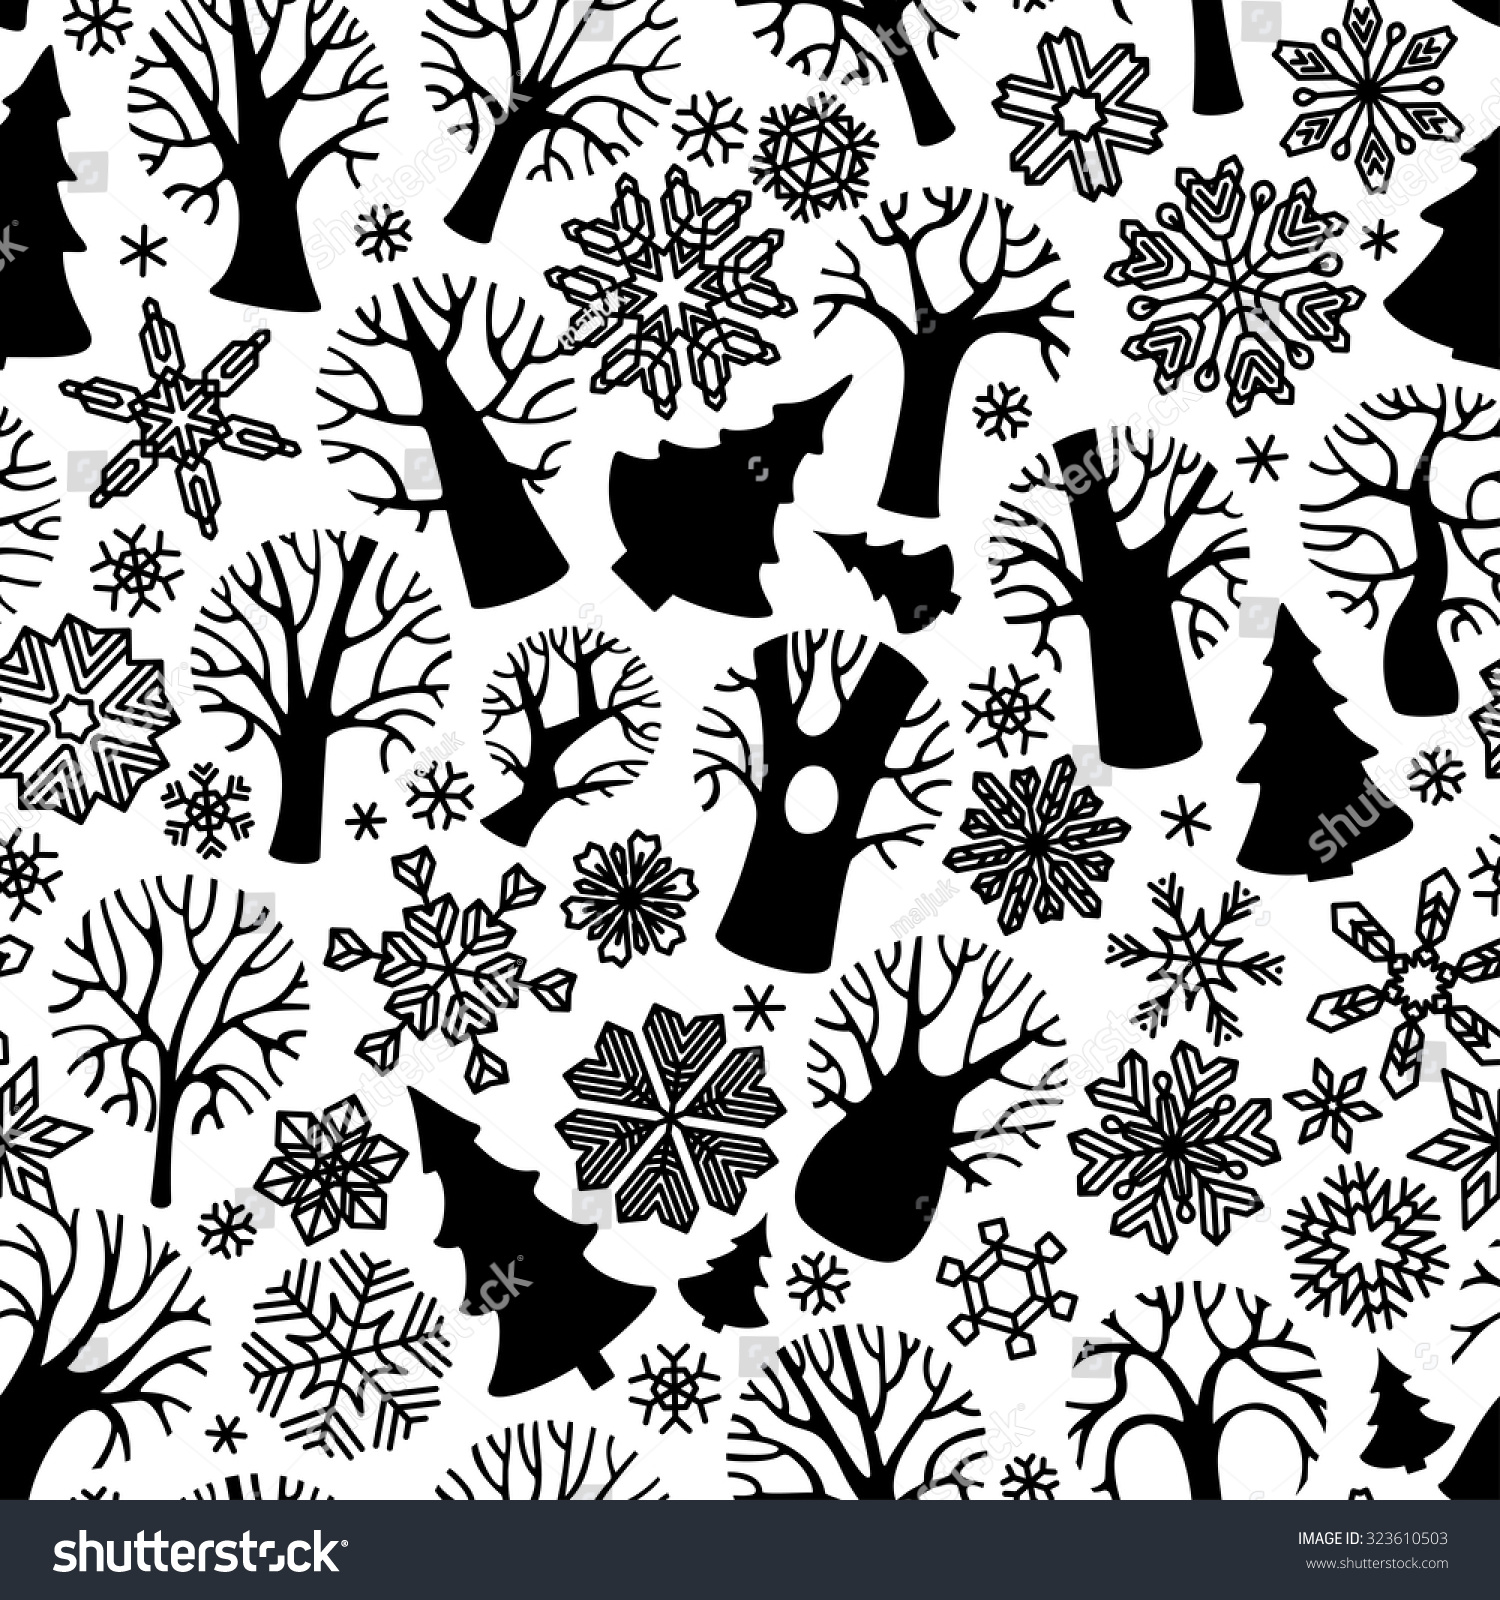 Seamless fir tree scandinavian pattern textile background wrapping - Seamless Winter Trees Pattern Black Silhouettes Of Deciduous Trees Firs And Snowflakes On White